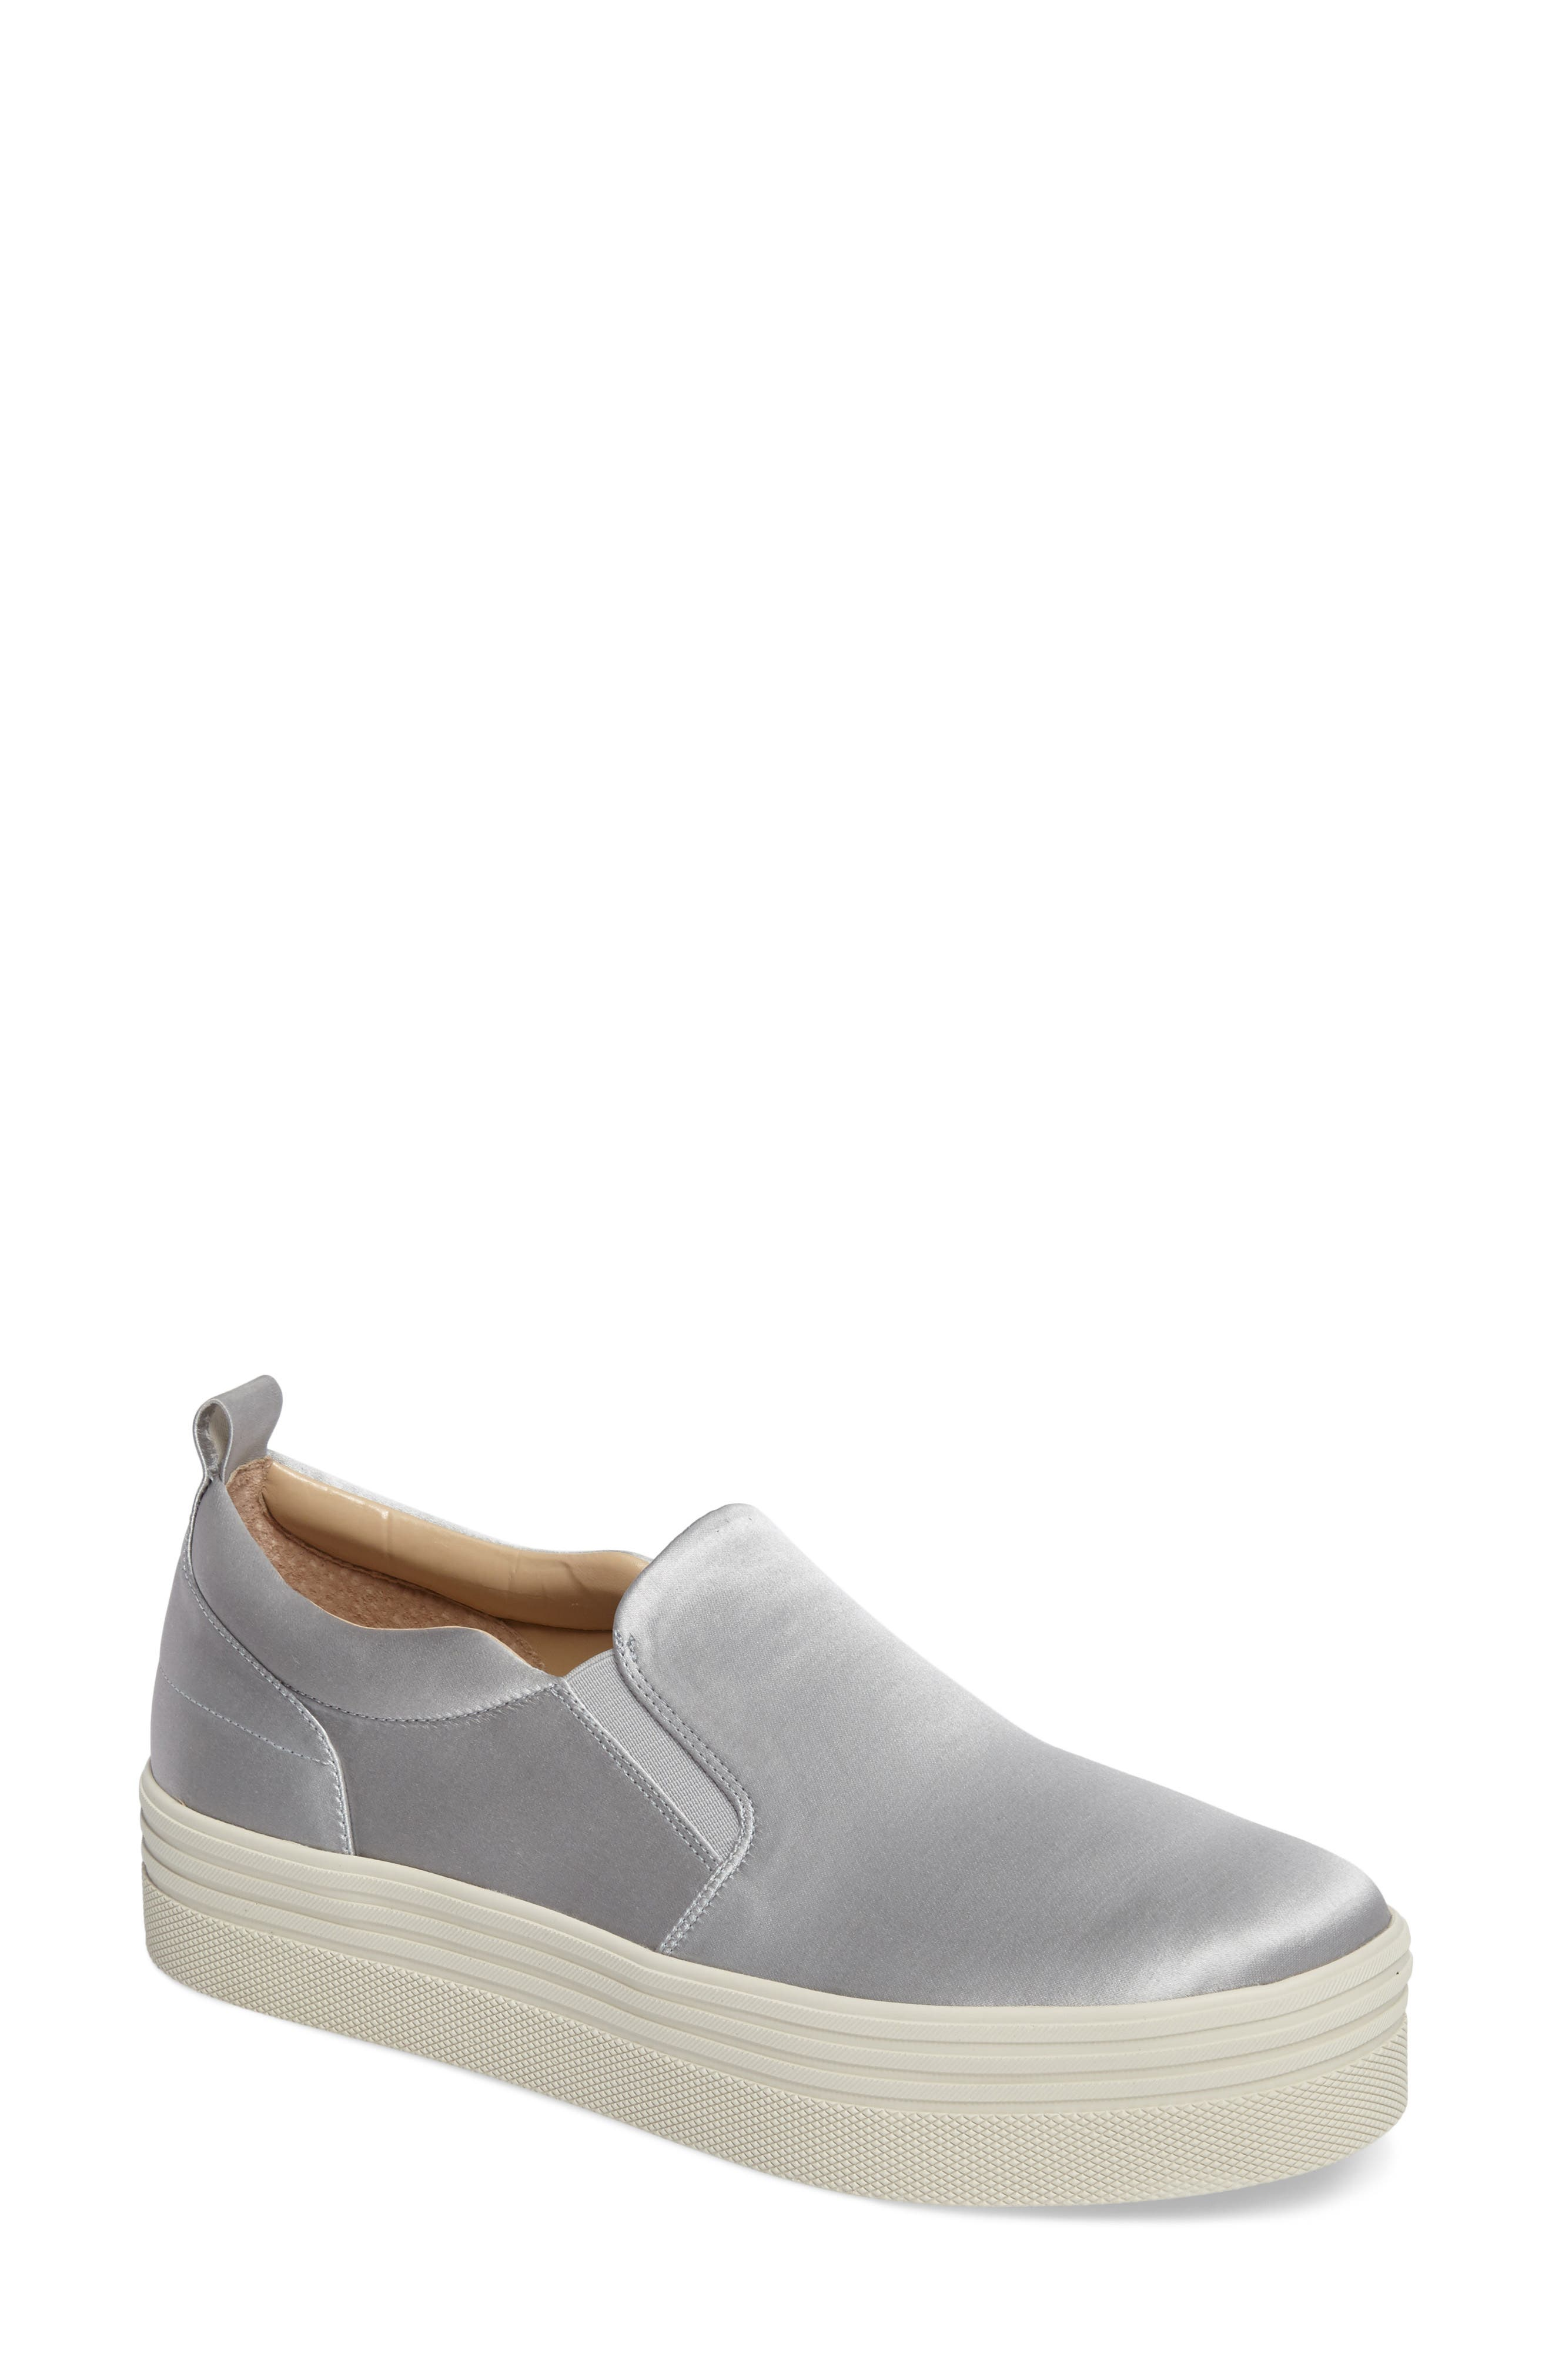 Main Image - Marc Fisher LTD Elise Platform Sneaker (Women)